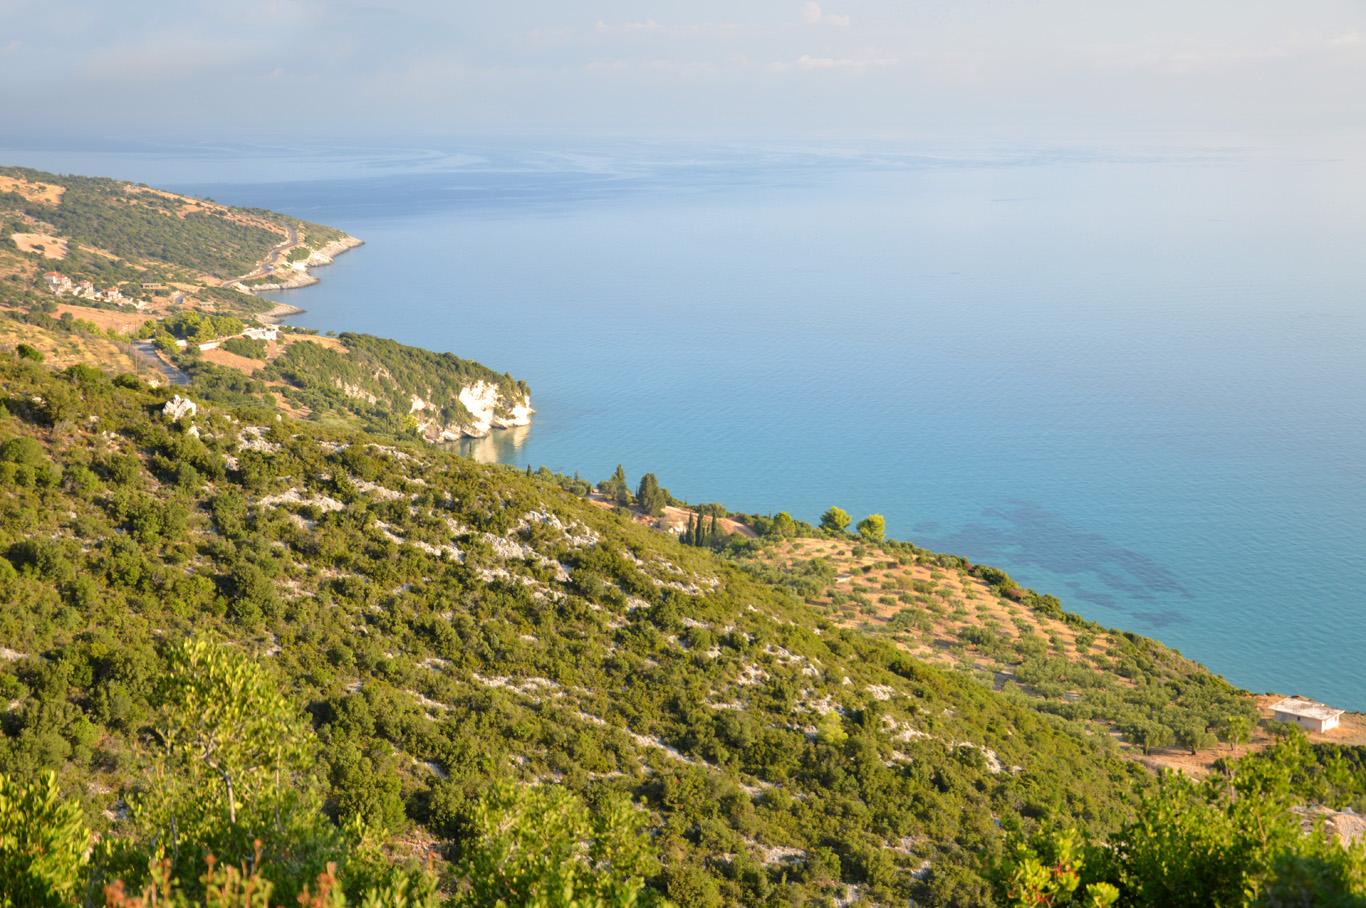 The coastline of Zakynthos